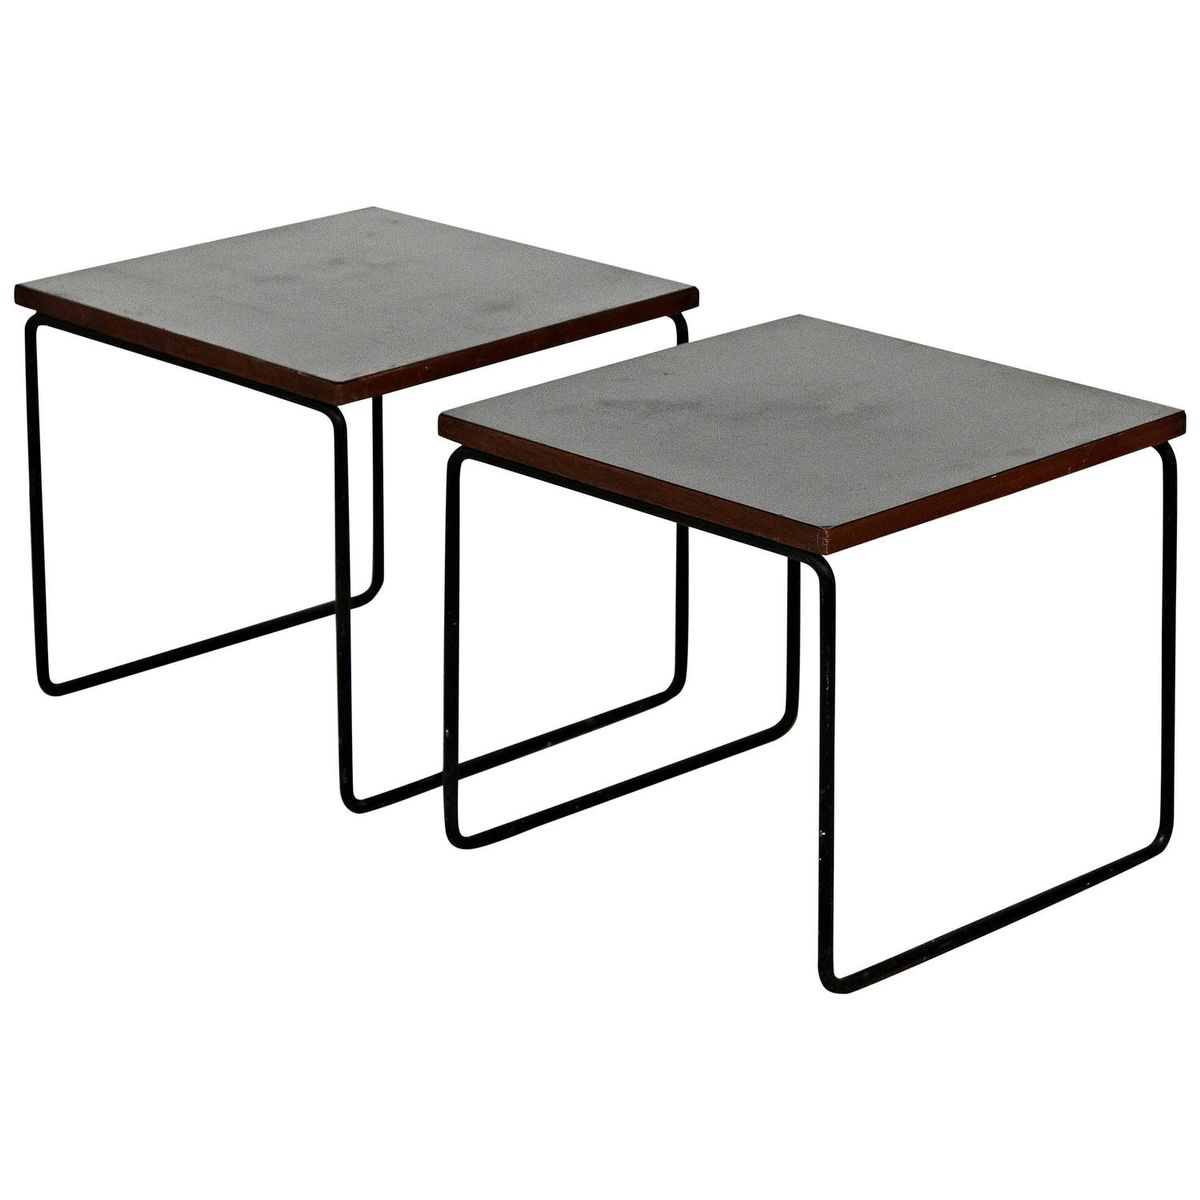 french side tables by pierre guariche for steiner 1950s. Black Bedroom Furniture Sets. Home Design Ideas